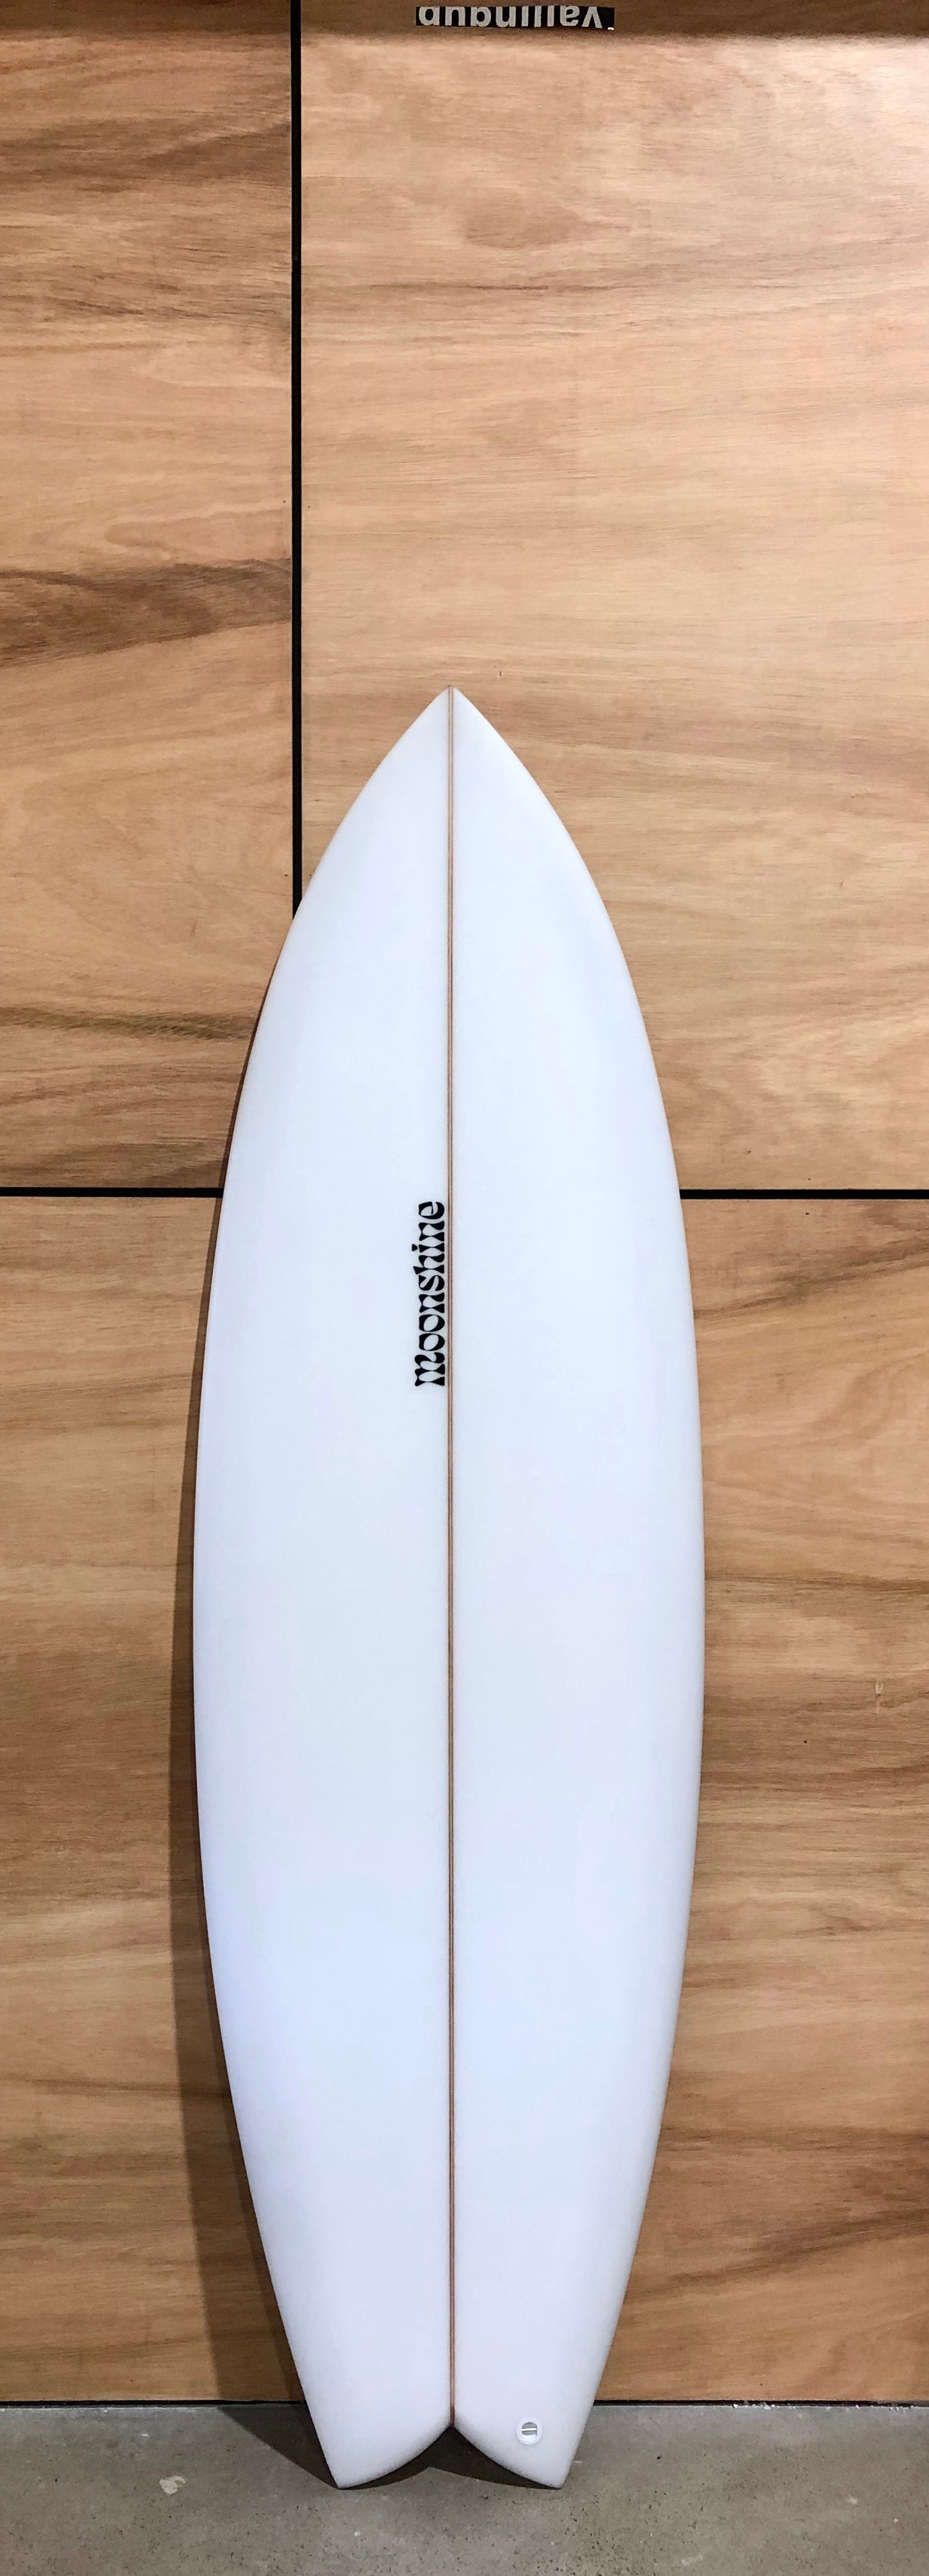 Moonshine - Demon (Swallow Channels) - Board Store MoonshineSurfboard